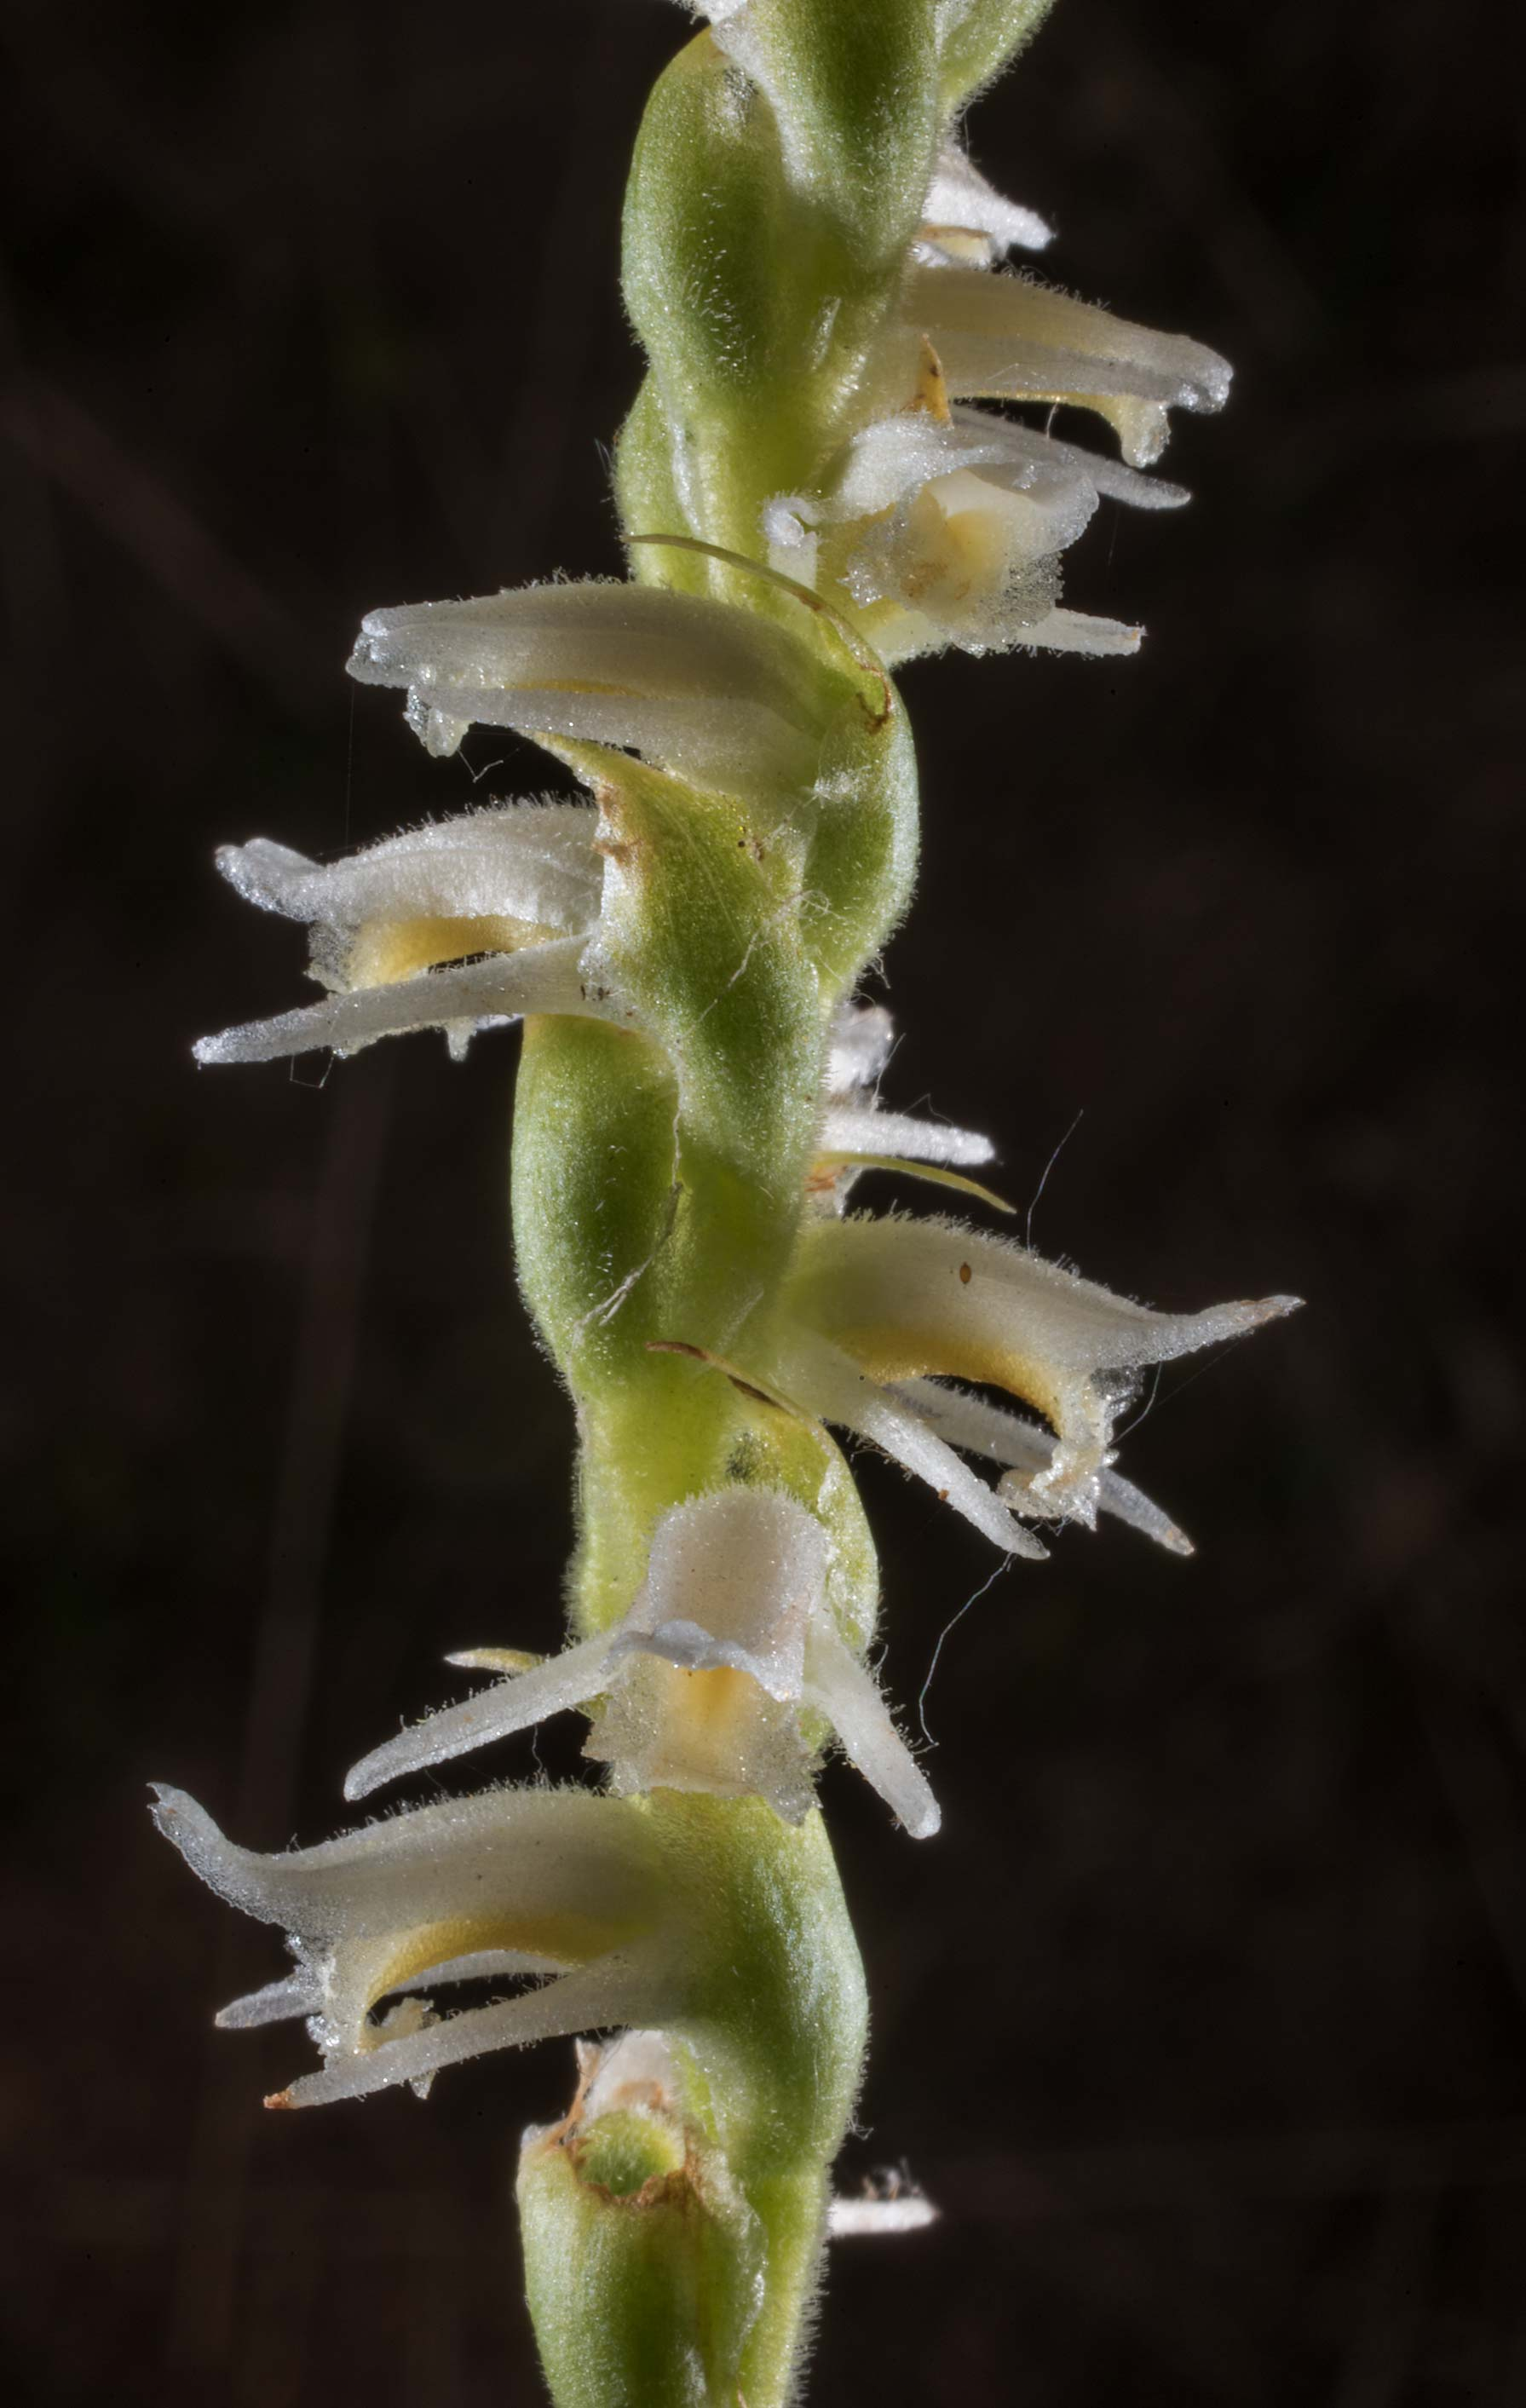 Spring lady's tresses (Spiranthes vernalis) in...State Historic Site. Washington, Texas